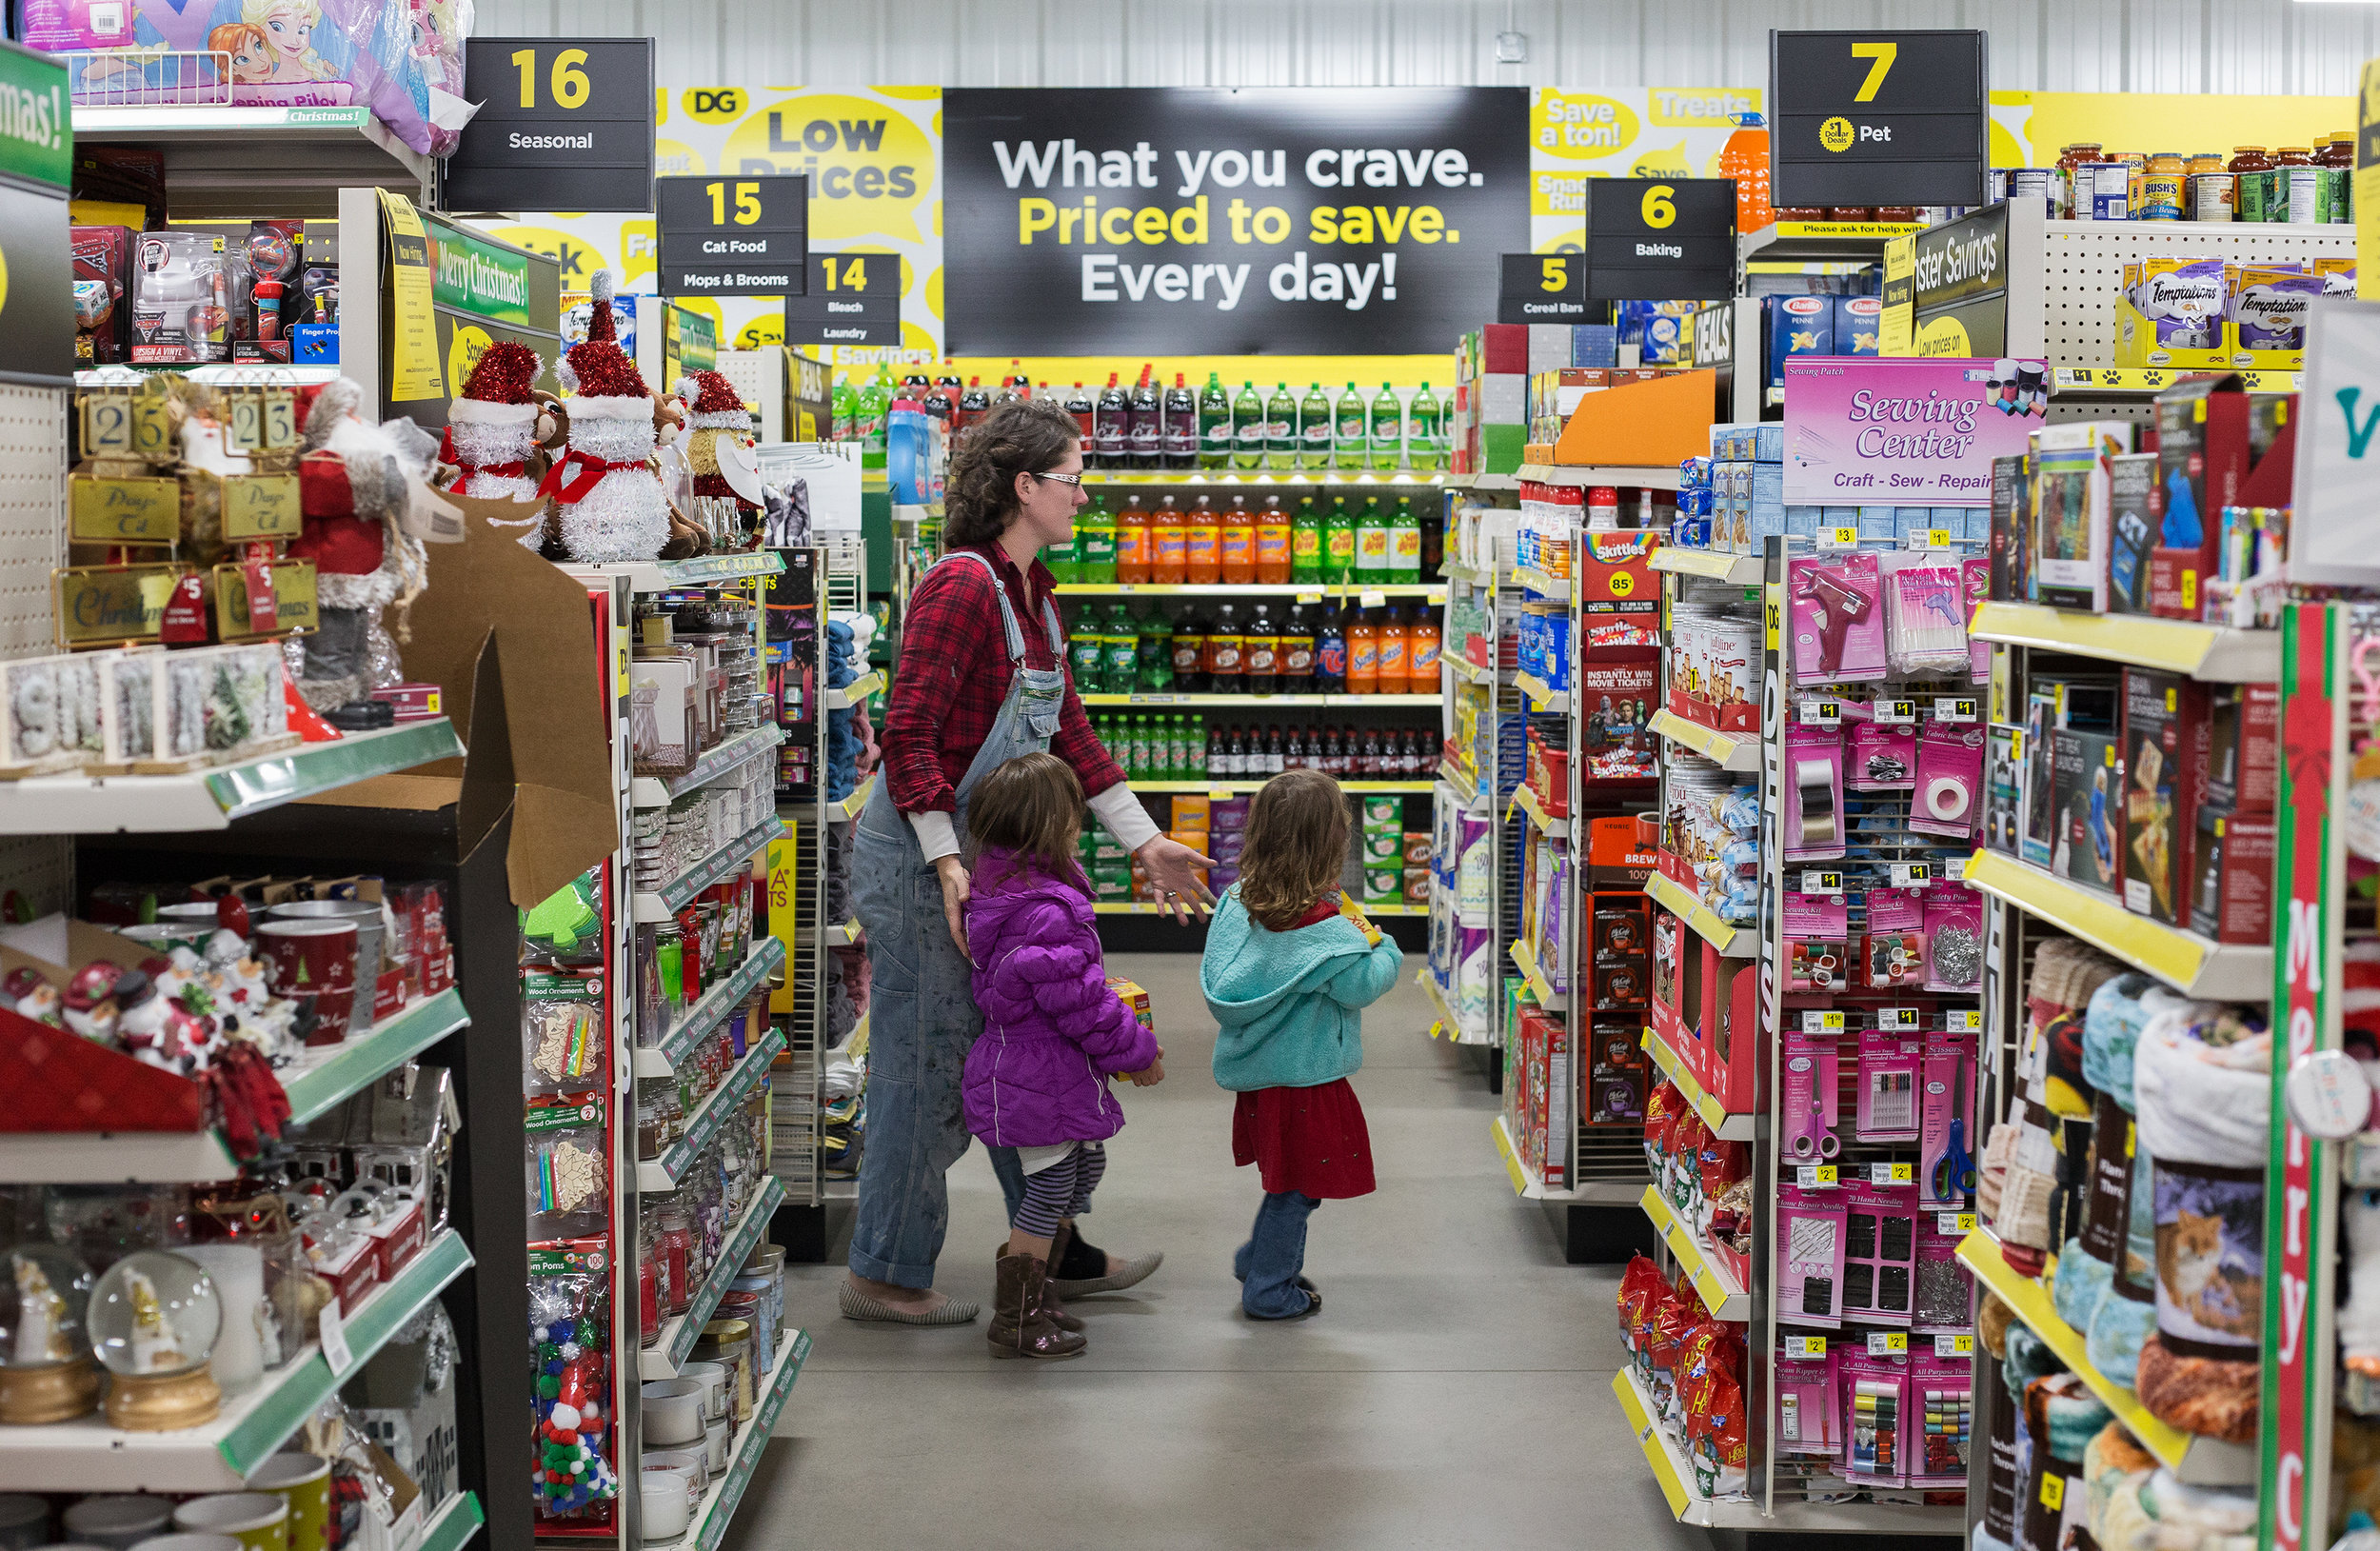 Local business owner Leah O'Neill, left, shops for cat food with her daughters Elizabeth and Emily O'Neill, 4, all of Evensville at Dollar General in Evensville, Tenn. Thursday, Nov. 16 2017.